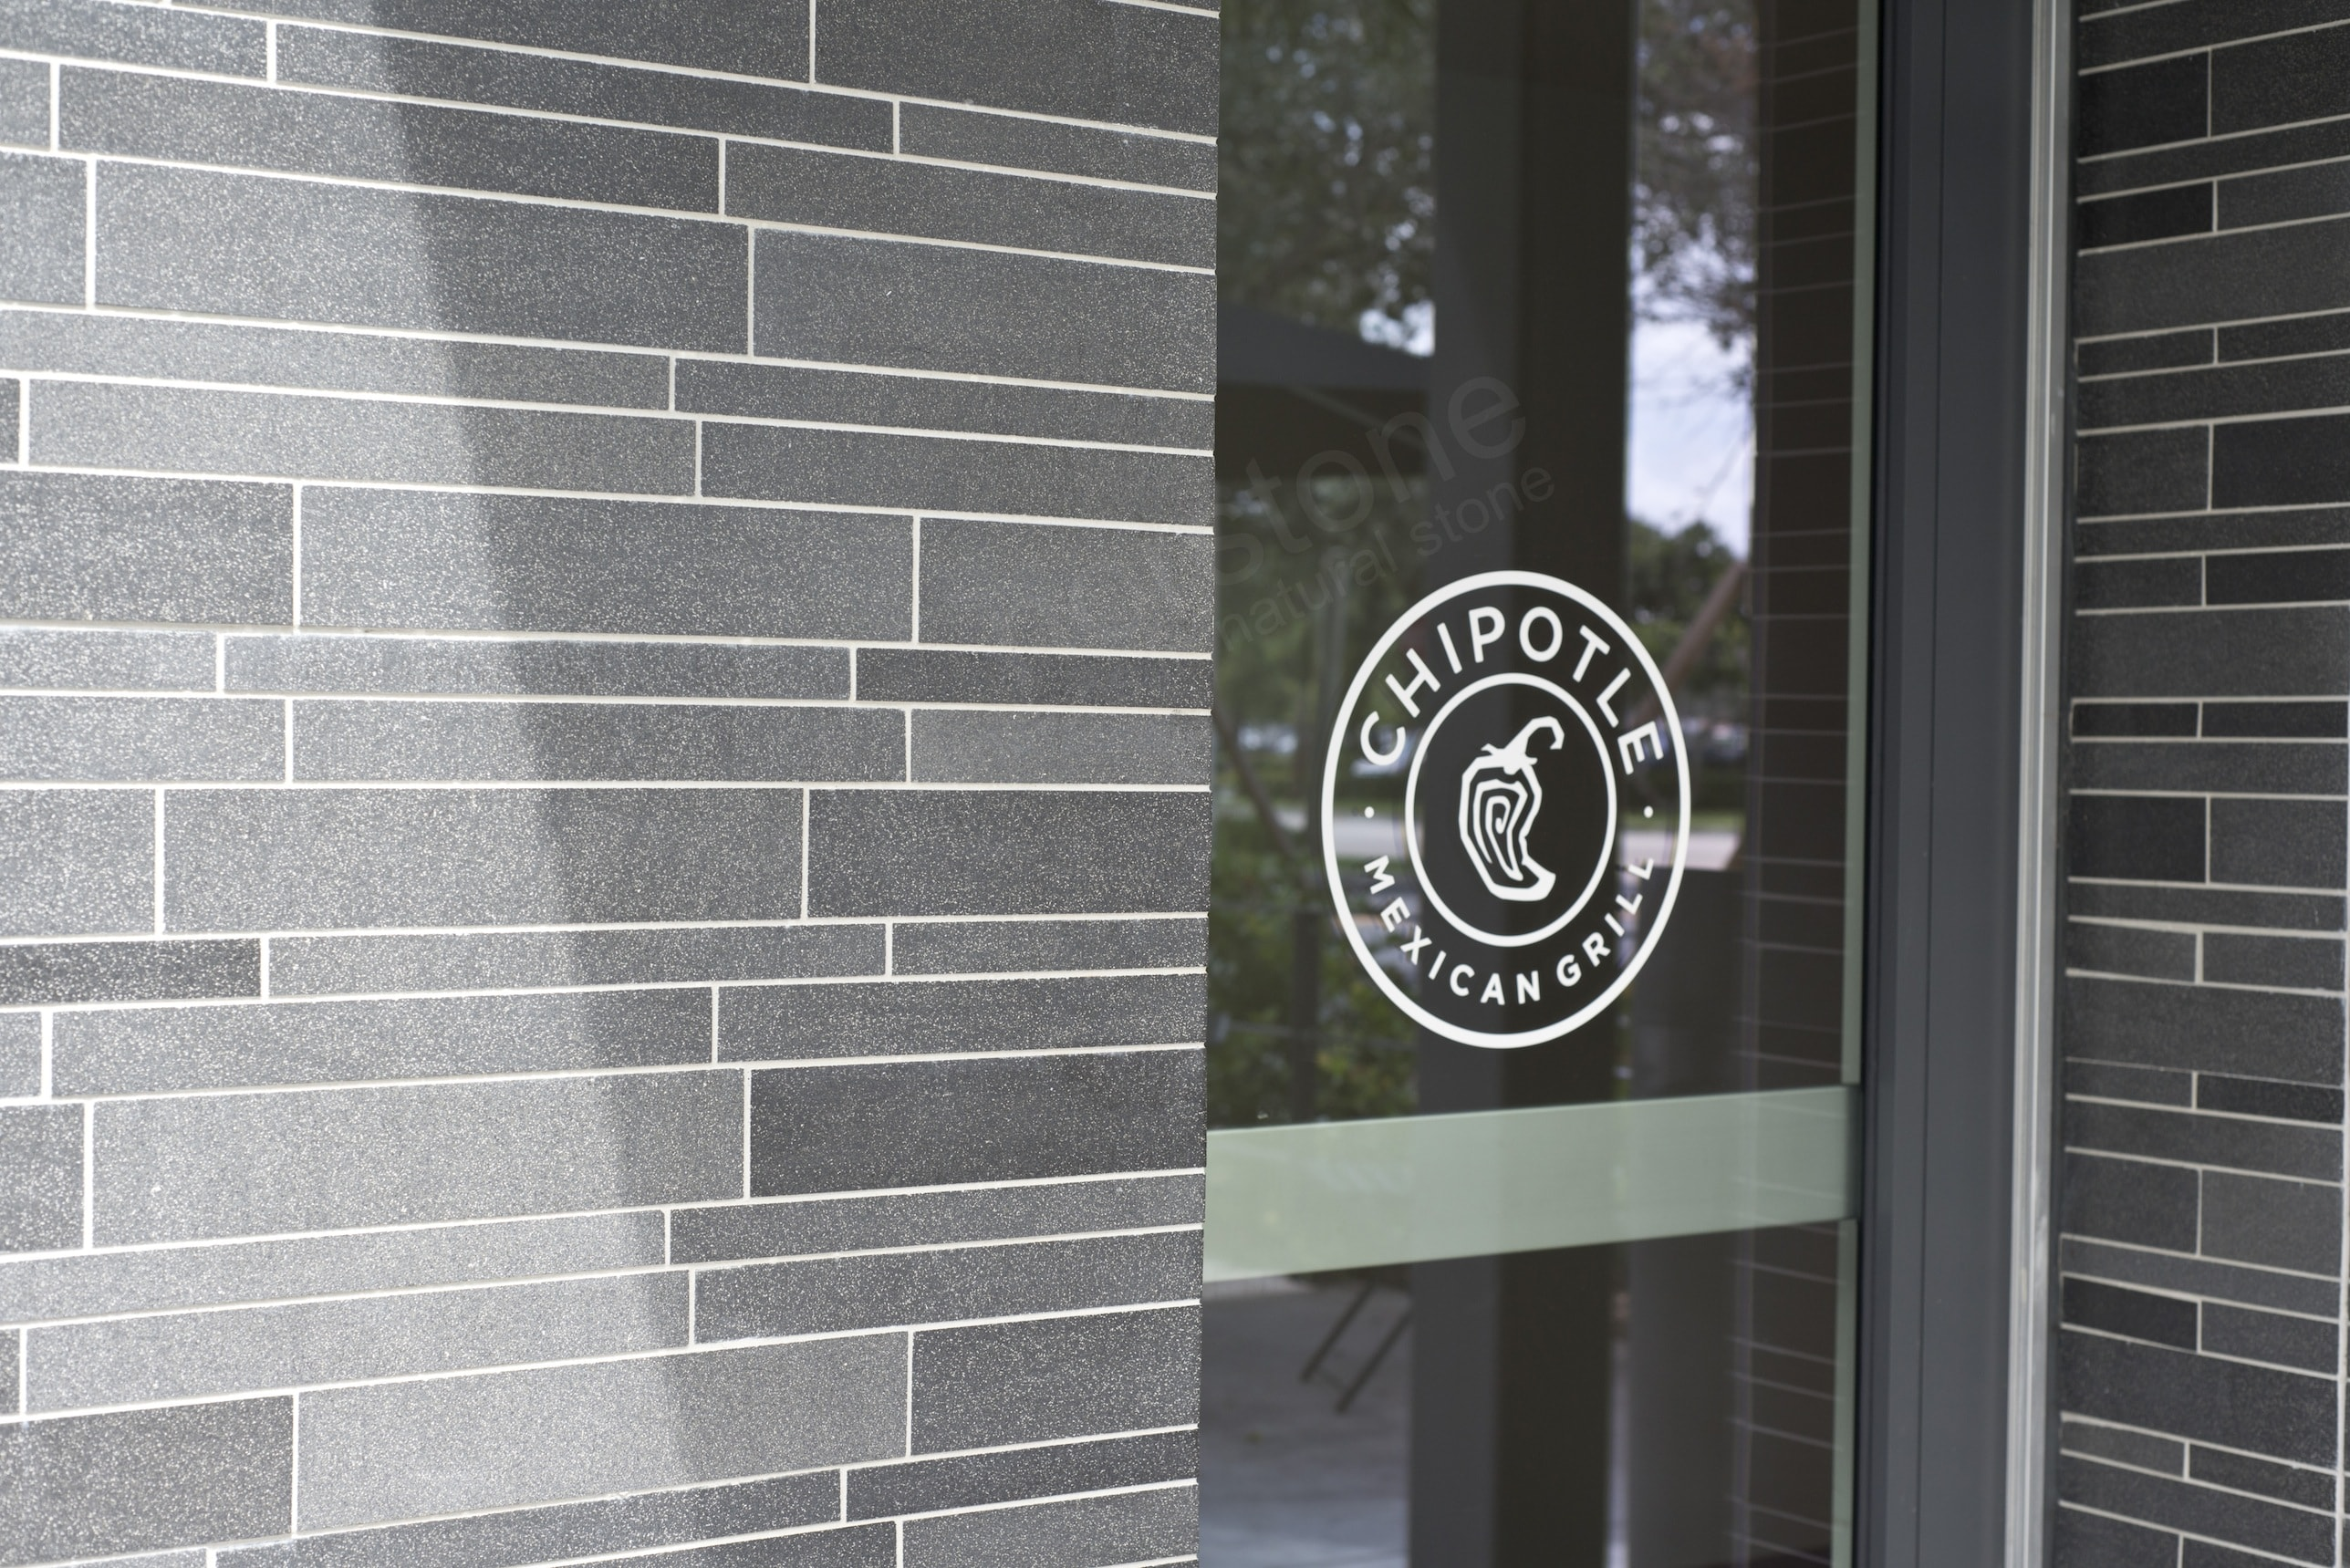 Norstone Lynia Interlocking Tiles in Grey Basalt surrounding the entrance to a Chipotle in South Florida